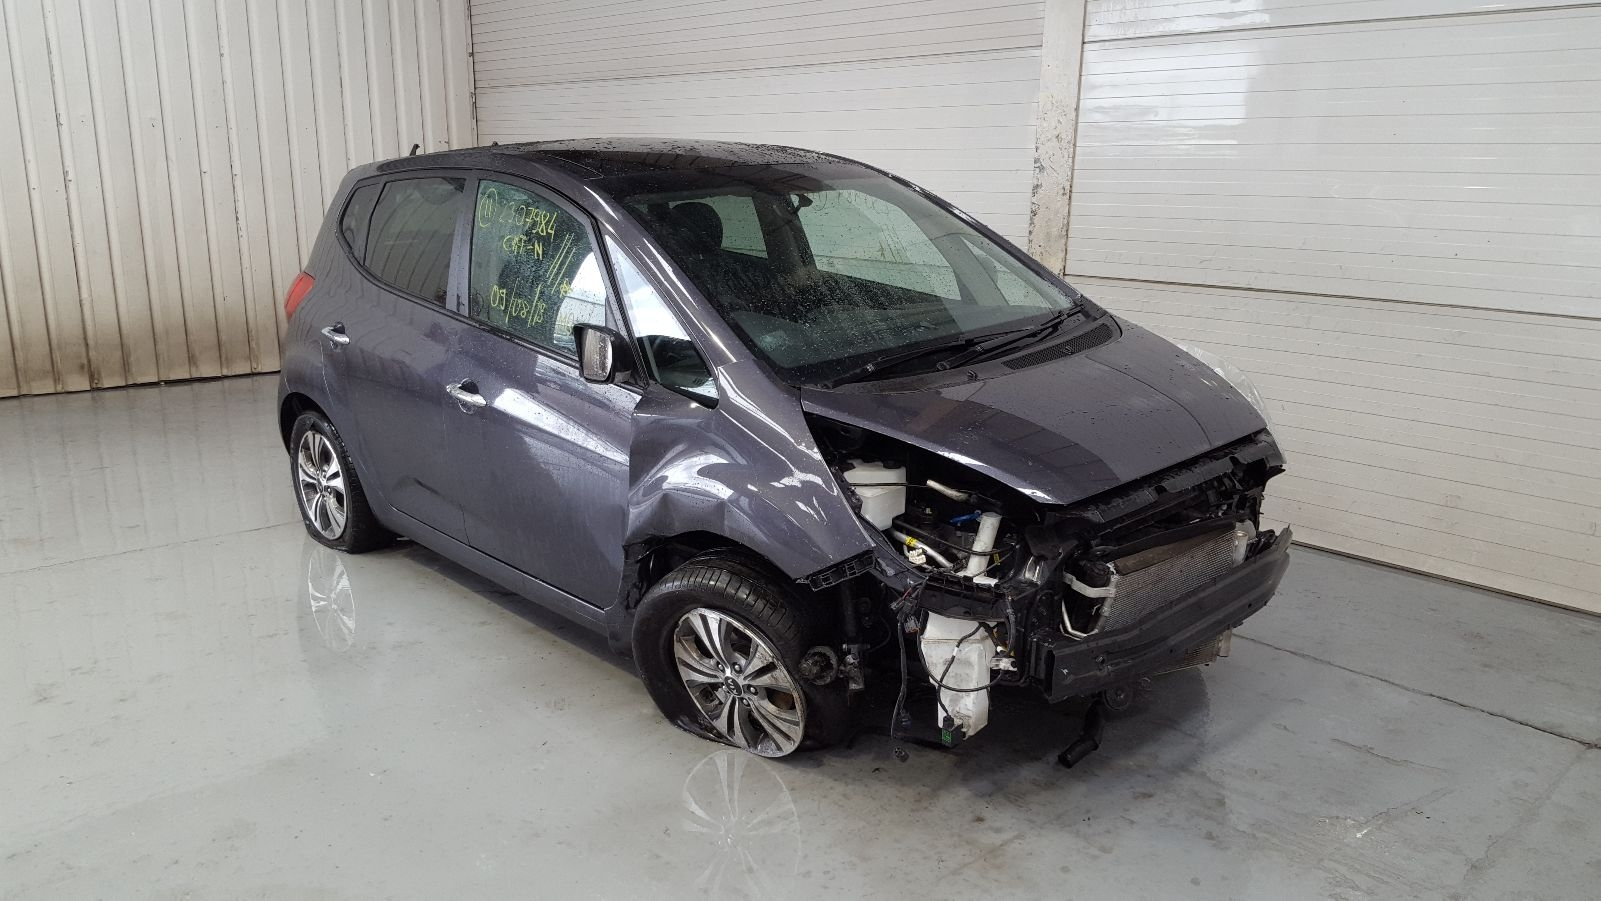 View Auto part LR Window Regulator Kia Venga 2018